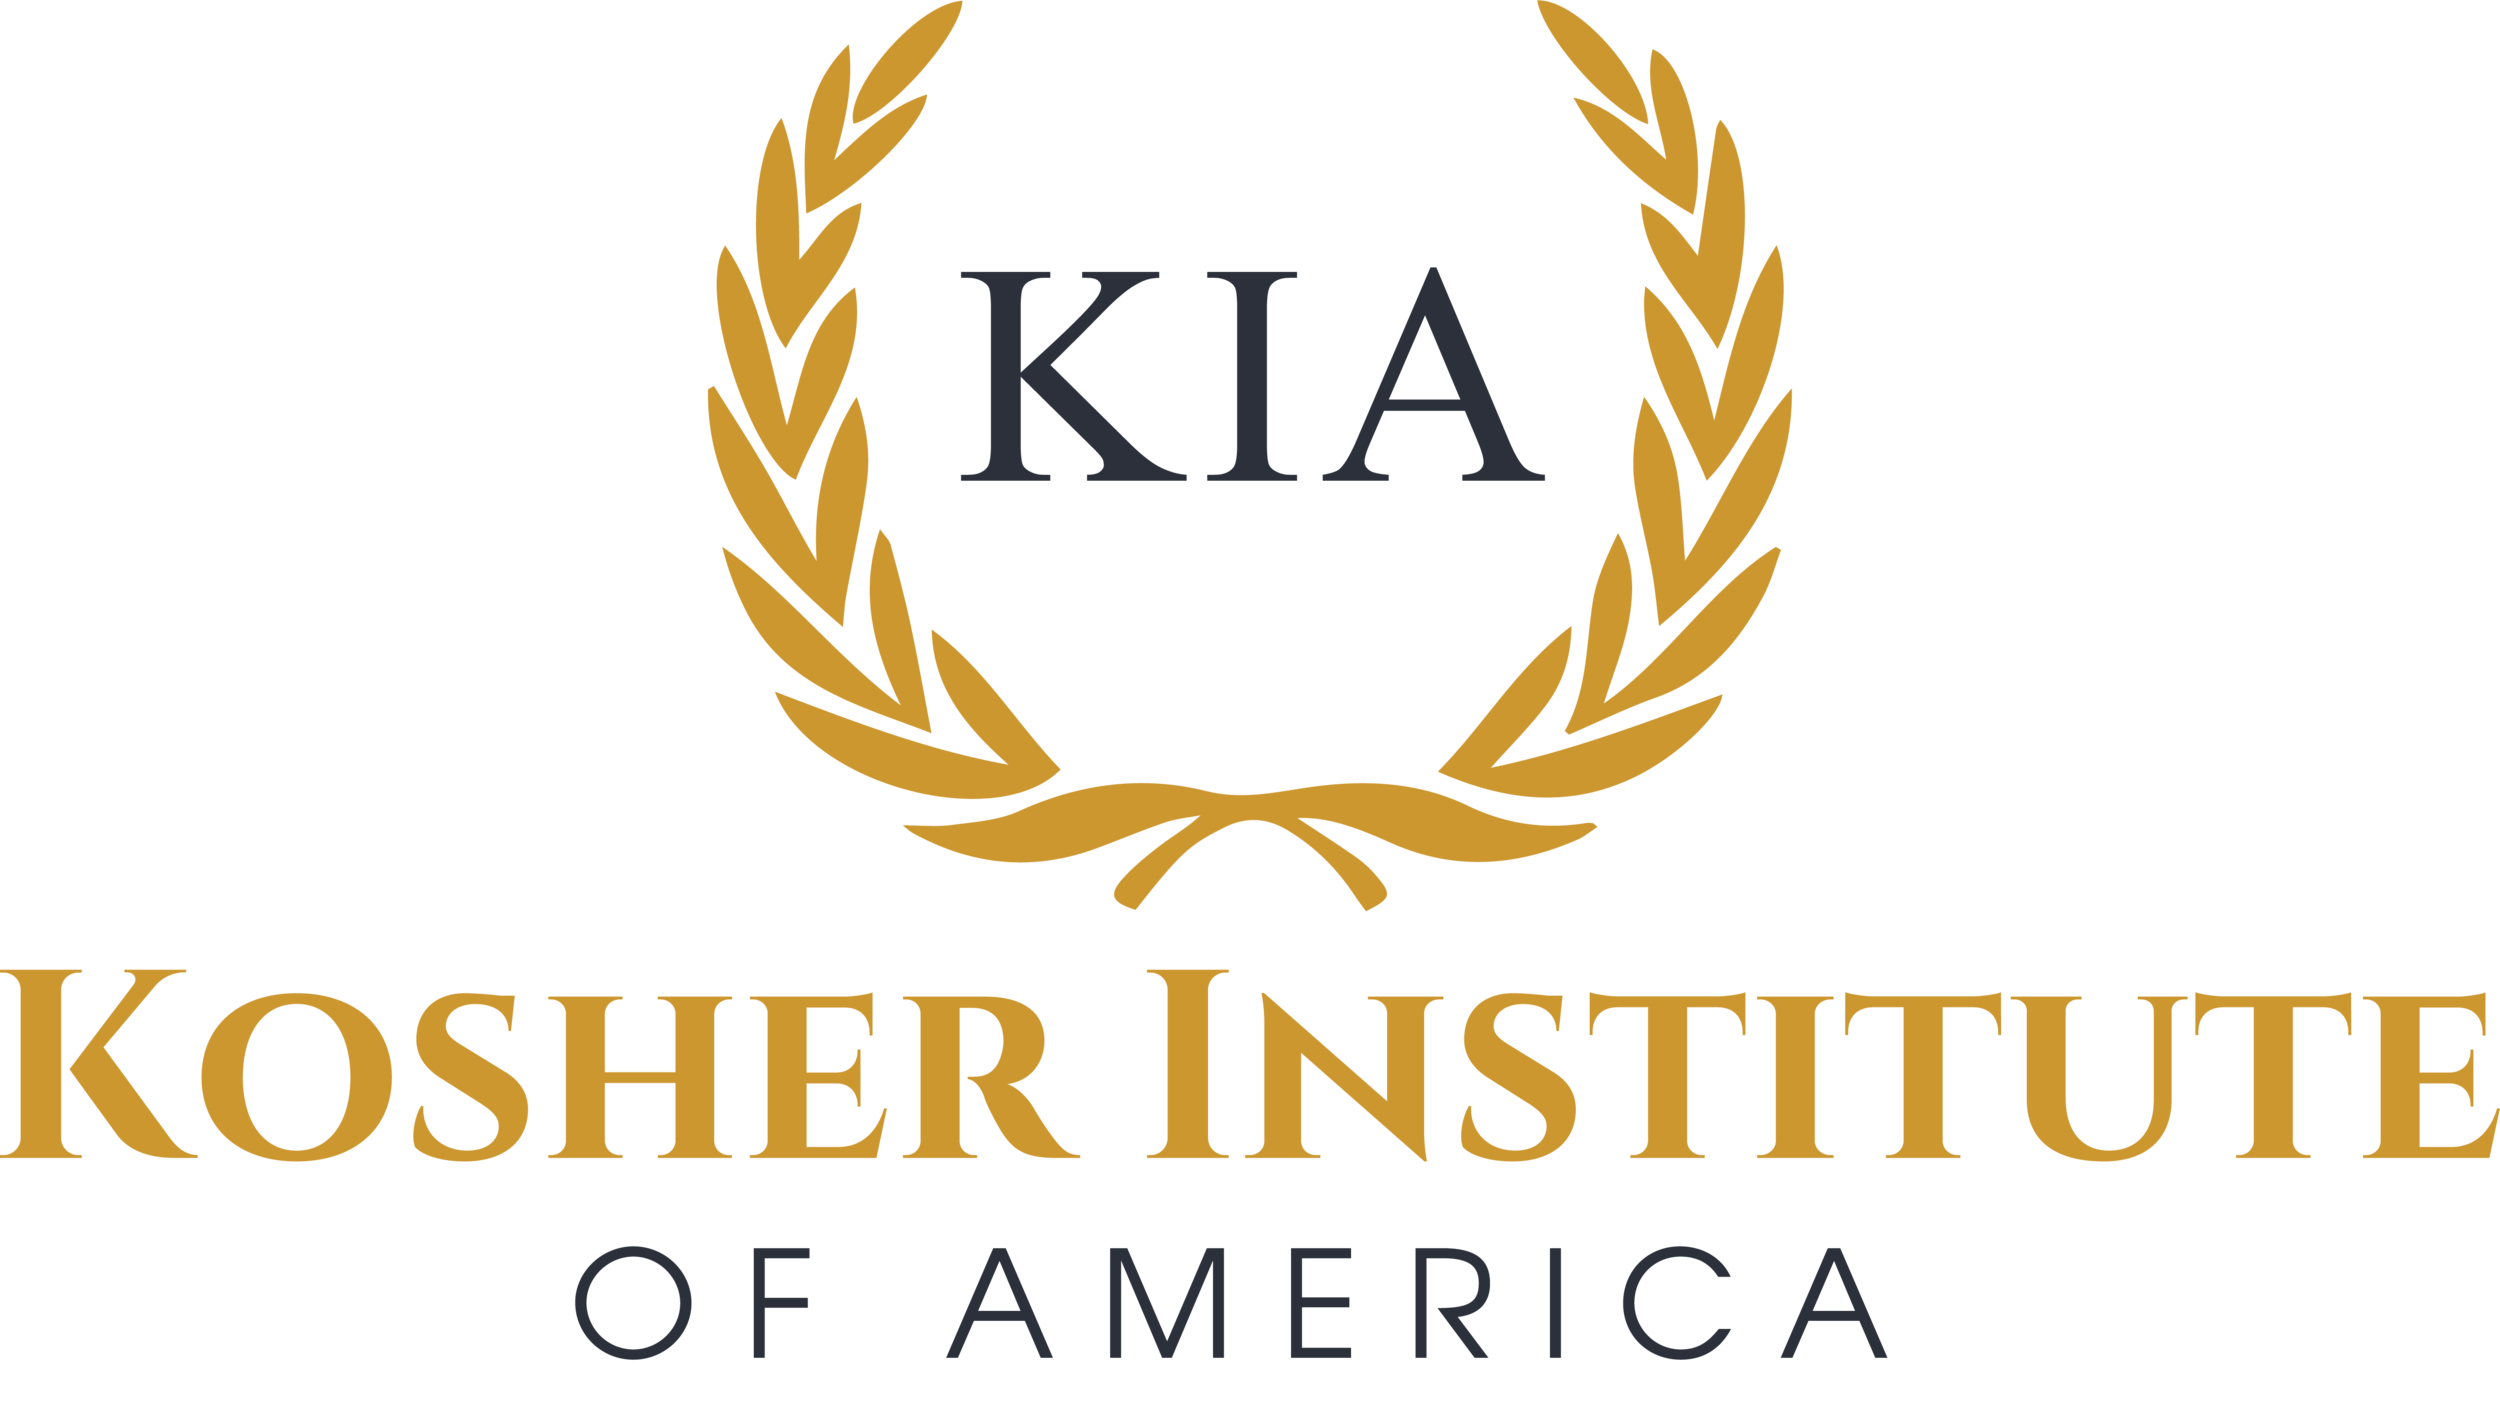 Kosher Institute of America Logo - PNG.png